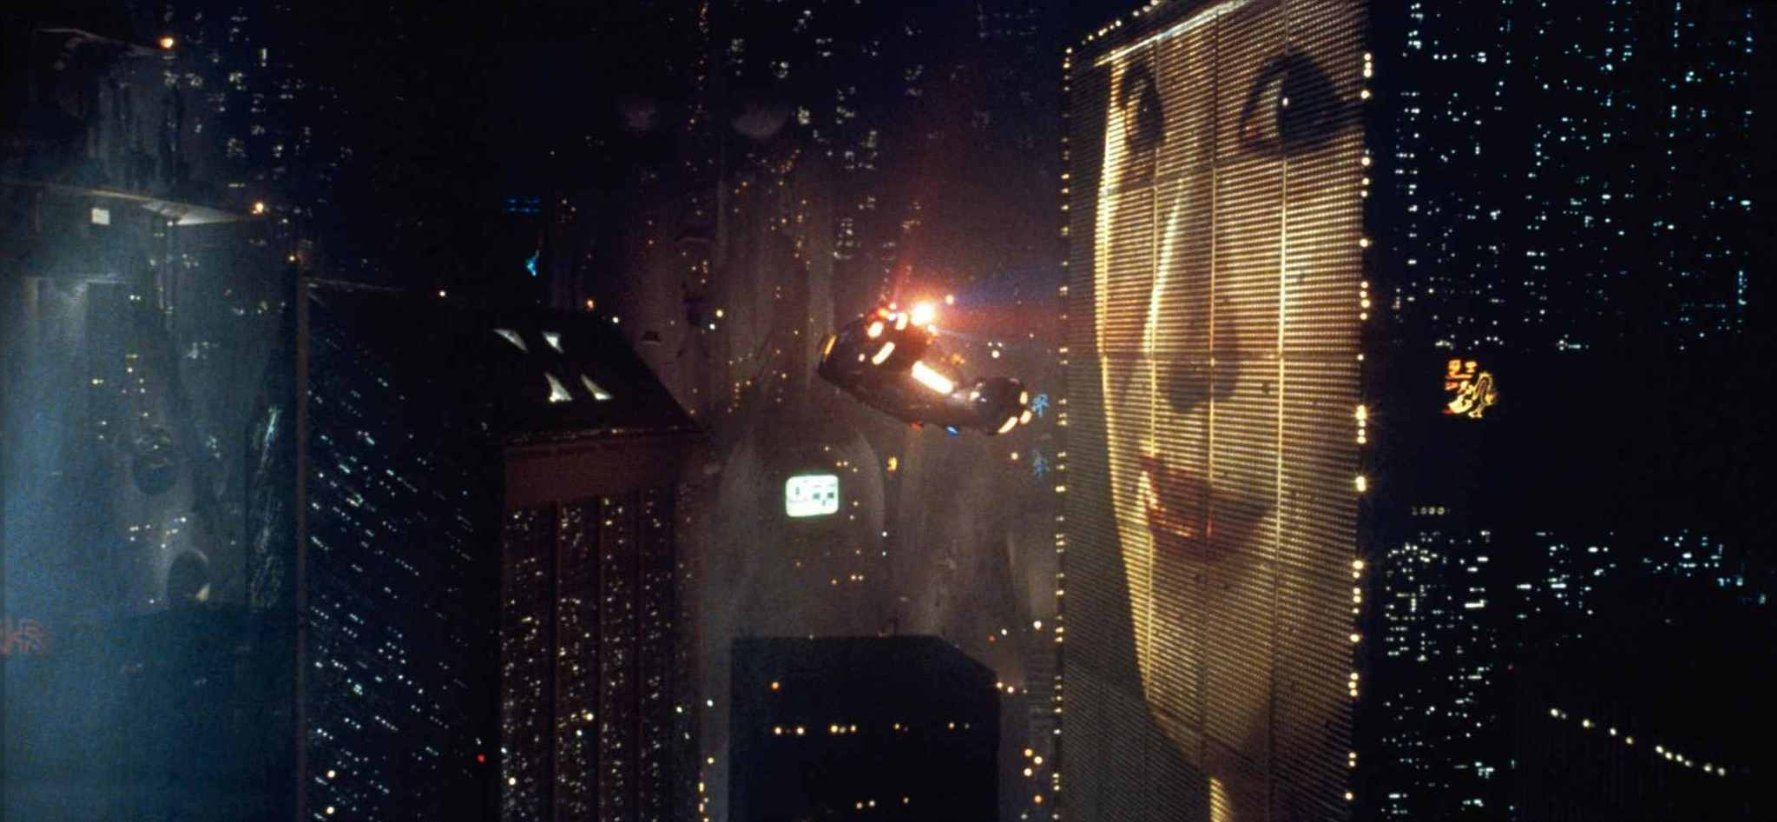 Architectural Design blade runner